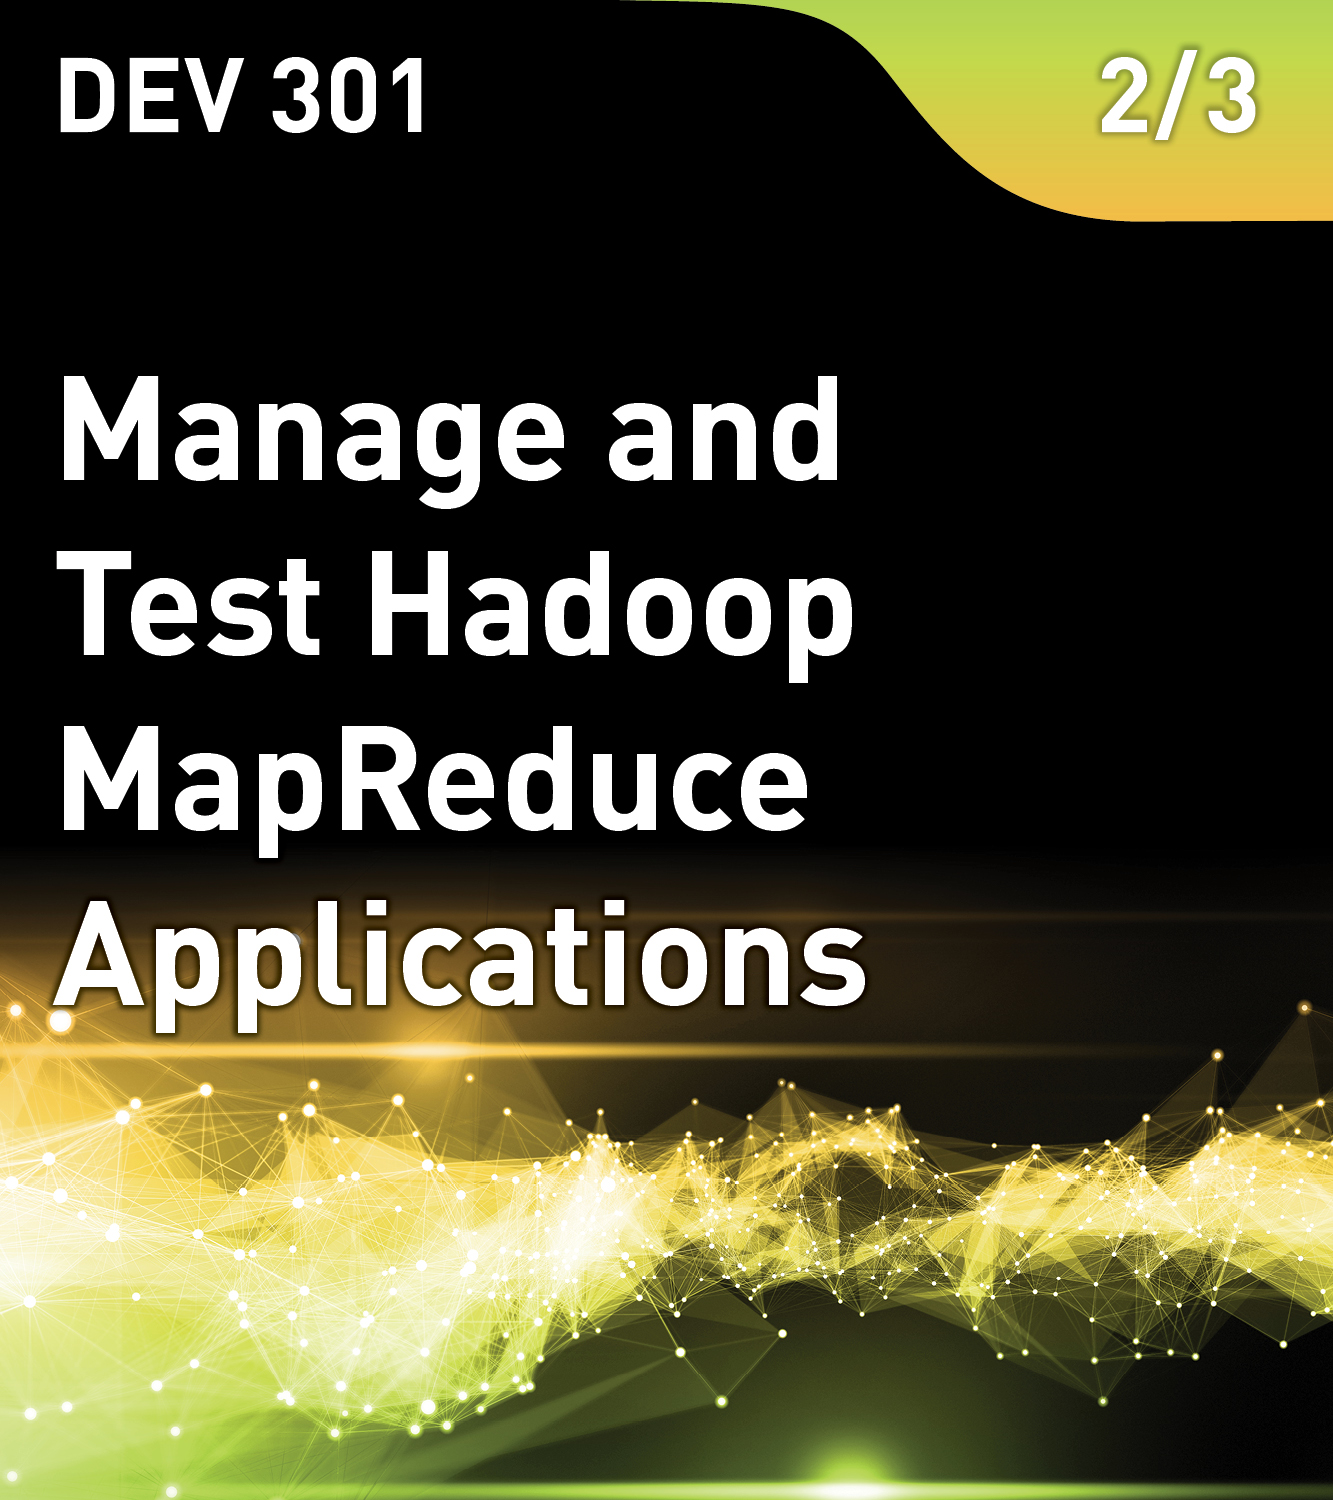 DEV 301 - Manage and Test Hadoop MapReduce Applications